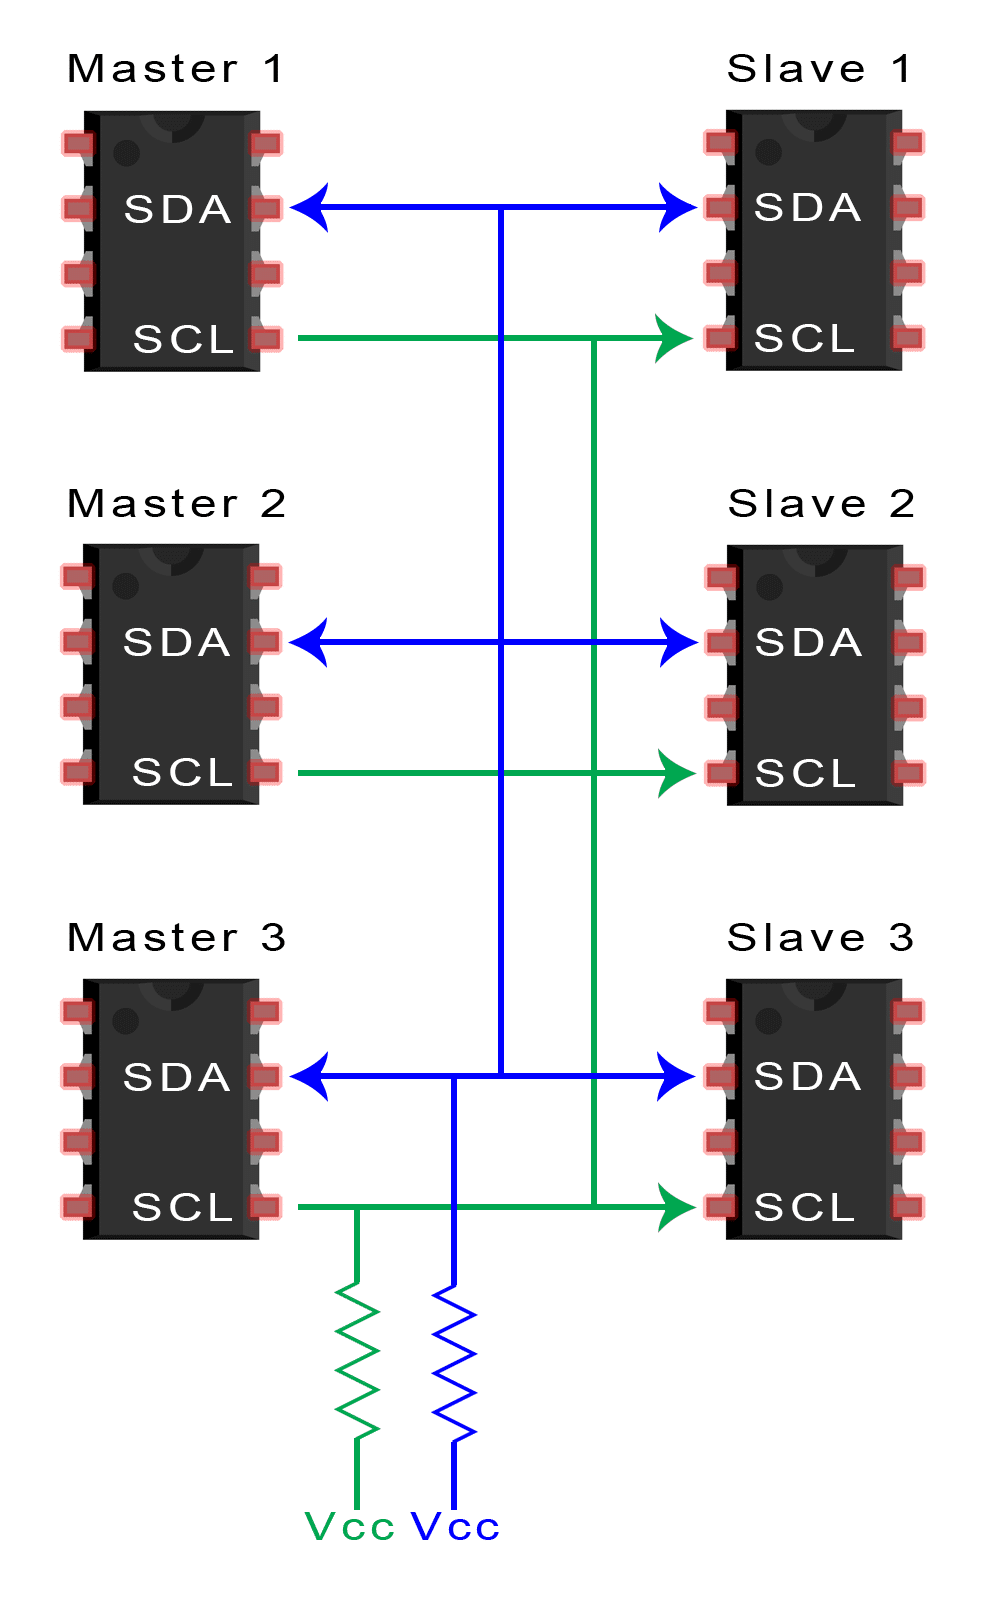 medium resolution of to connect multiple masters to multiple slaves use the following diagram with 4 7k ohm pull up resistors connecting the sda and scl lines to vcc